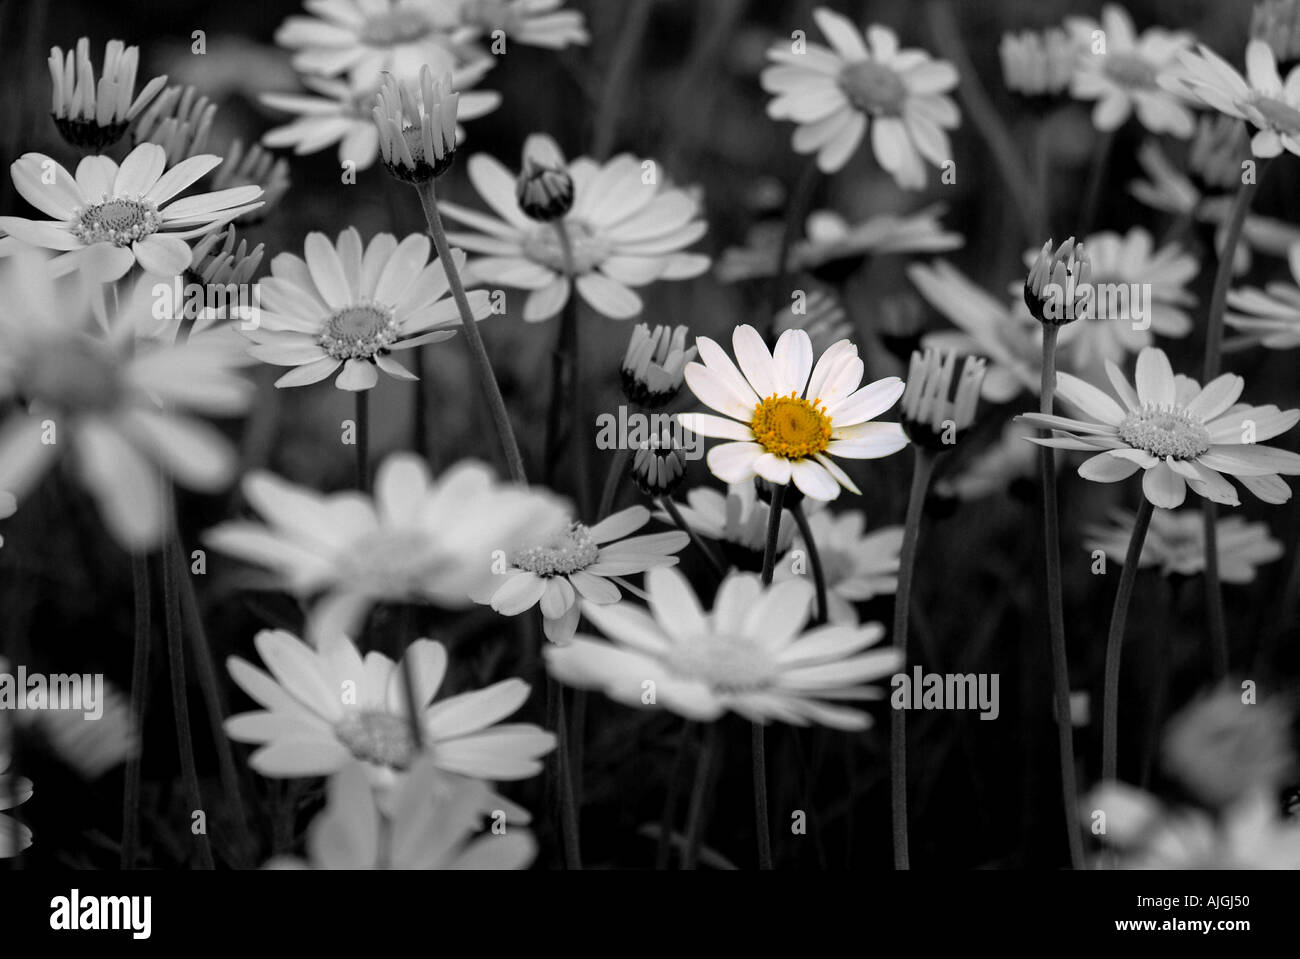 Single Dandelion Flower In Colour Standing Out Against Other Flowers